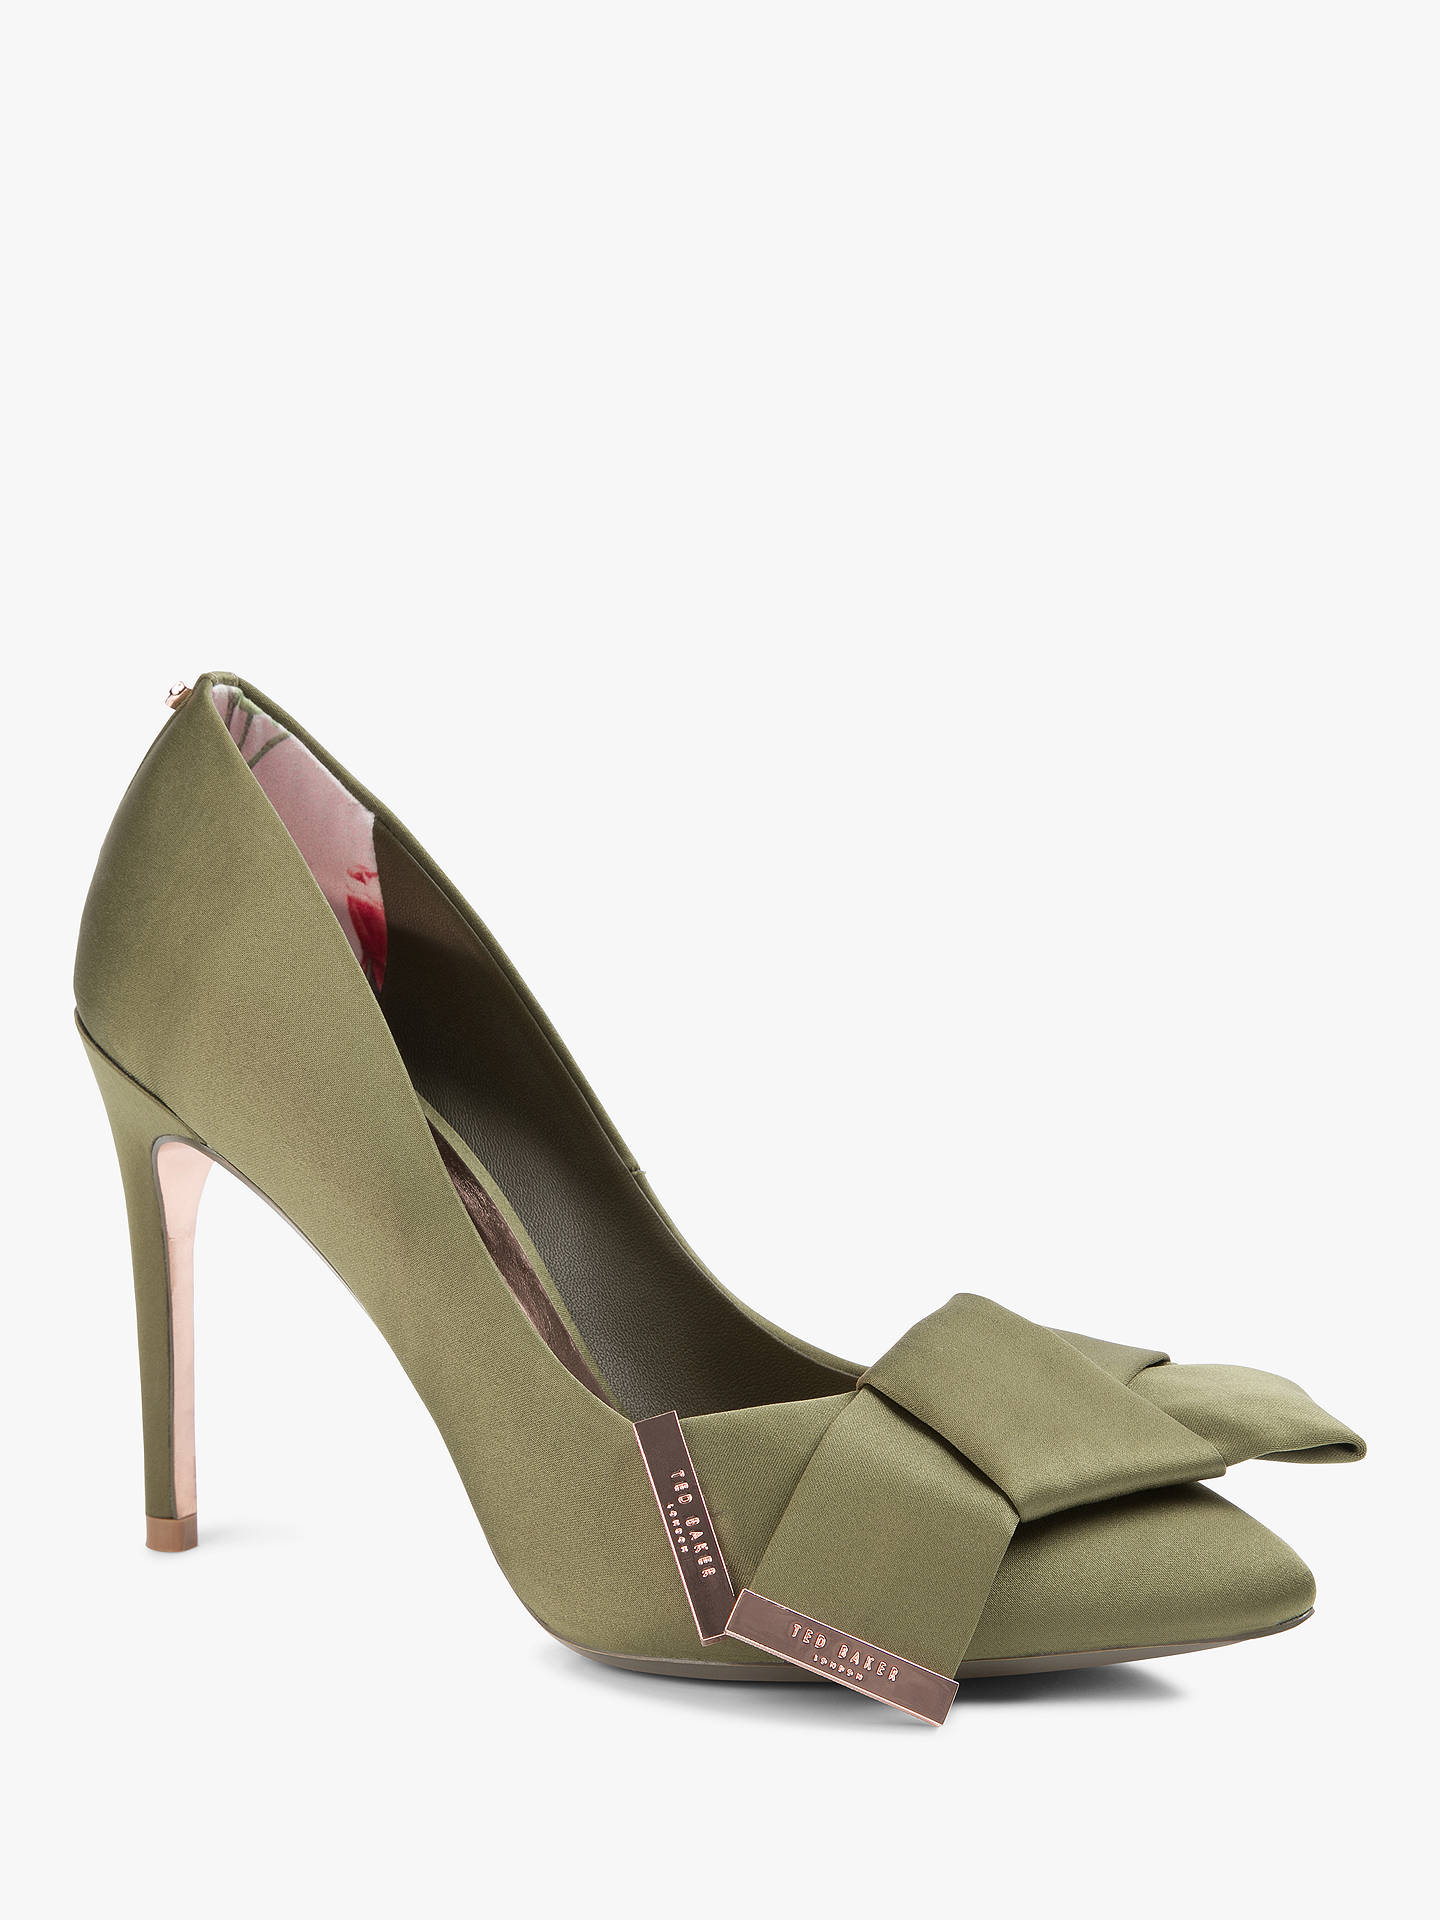 dca892987 Ted Baker Ines Stiletto Heel Bow Detail Court Shoes at John Lewis ...